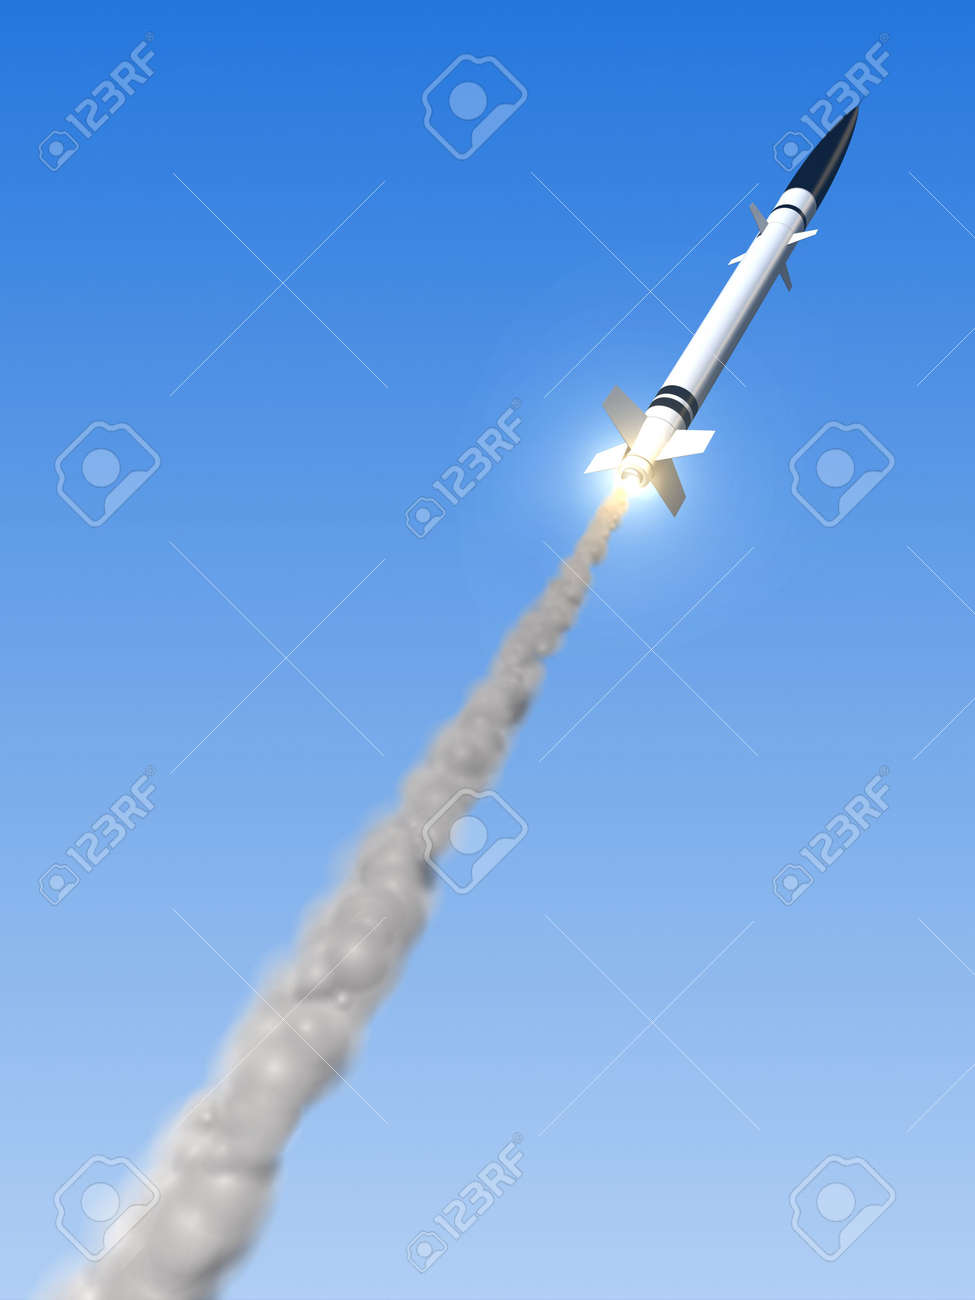 missile Stock Photo - 577604